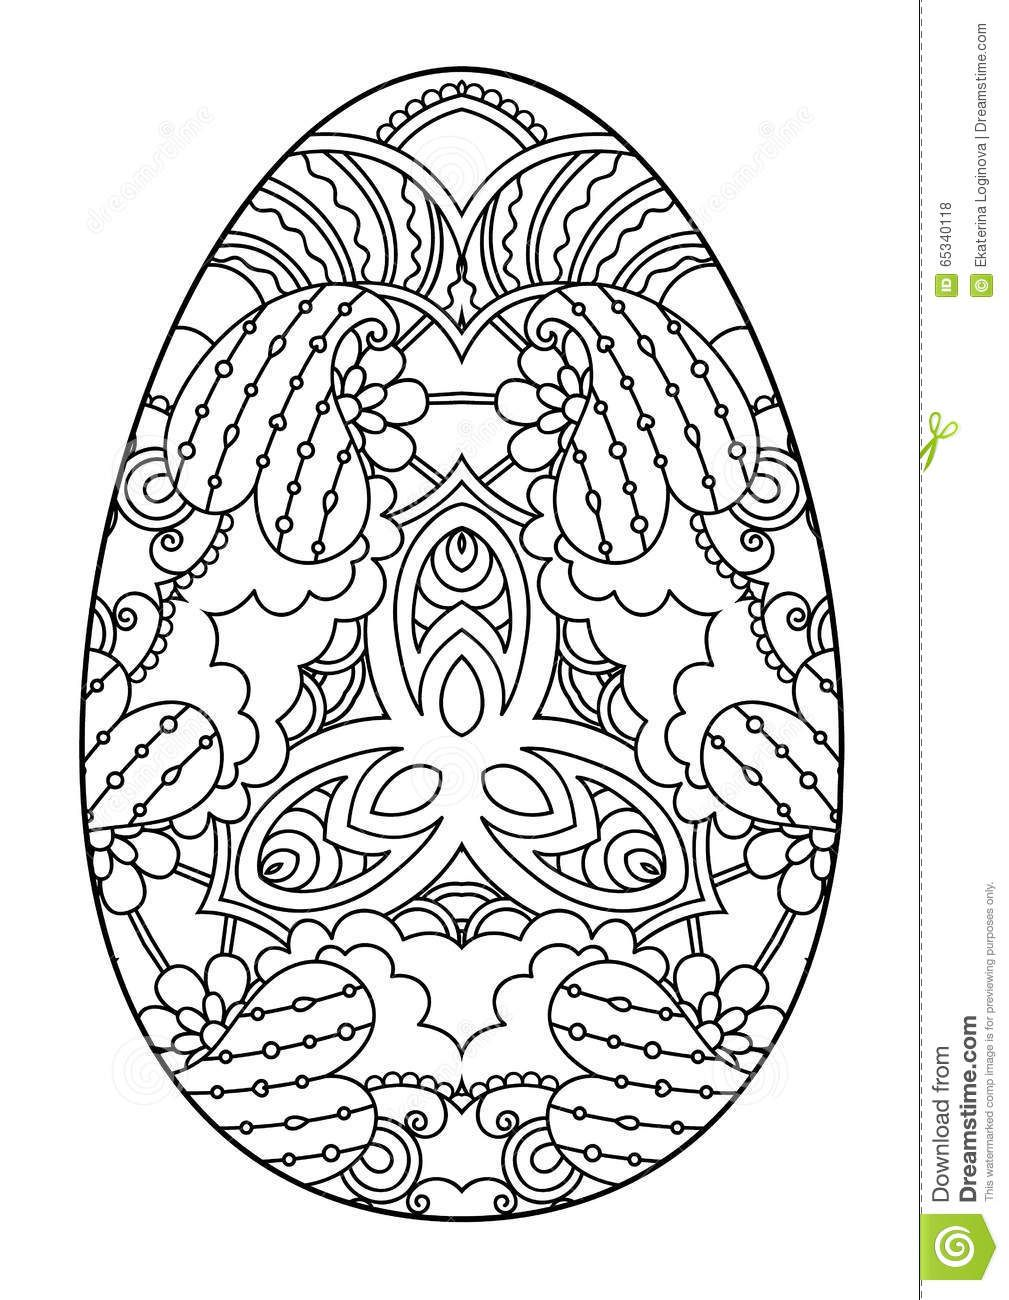 Zentangle Black White Decorative Easter Egg Vector Illustration 65340118 Jpg 1009 1300 Easter Drawings Easter Coloring Pages Mandala Coloring Pages